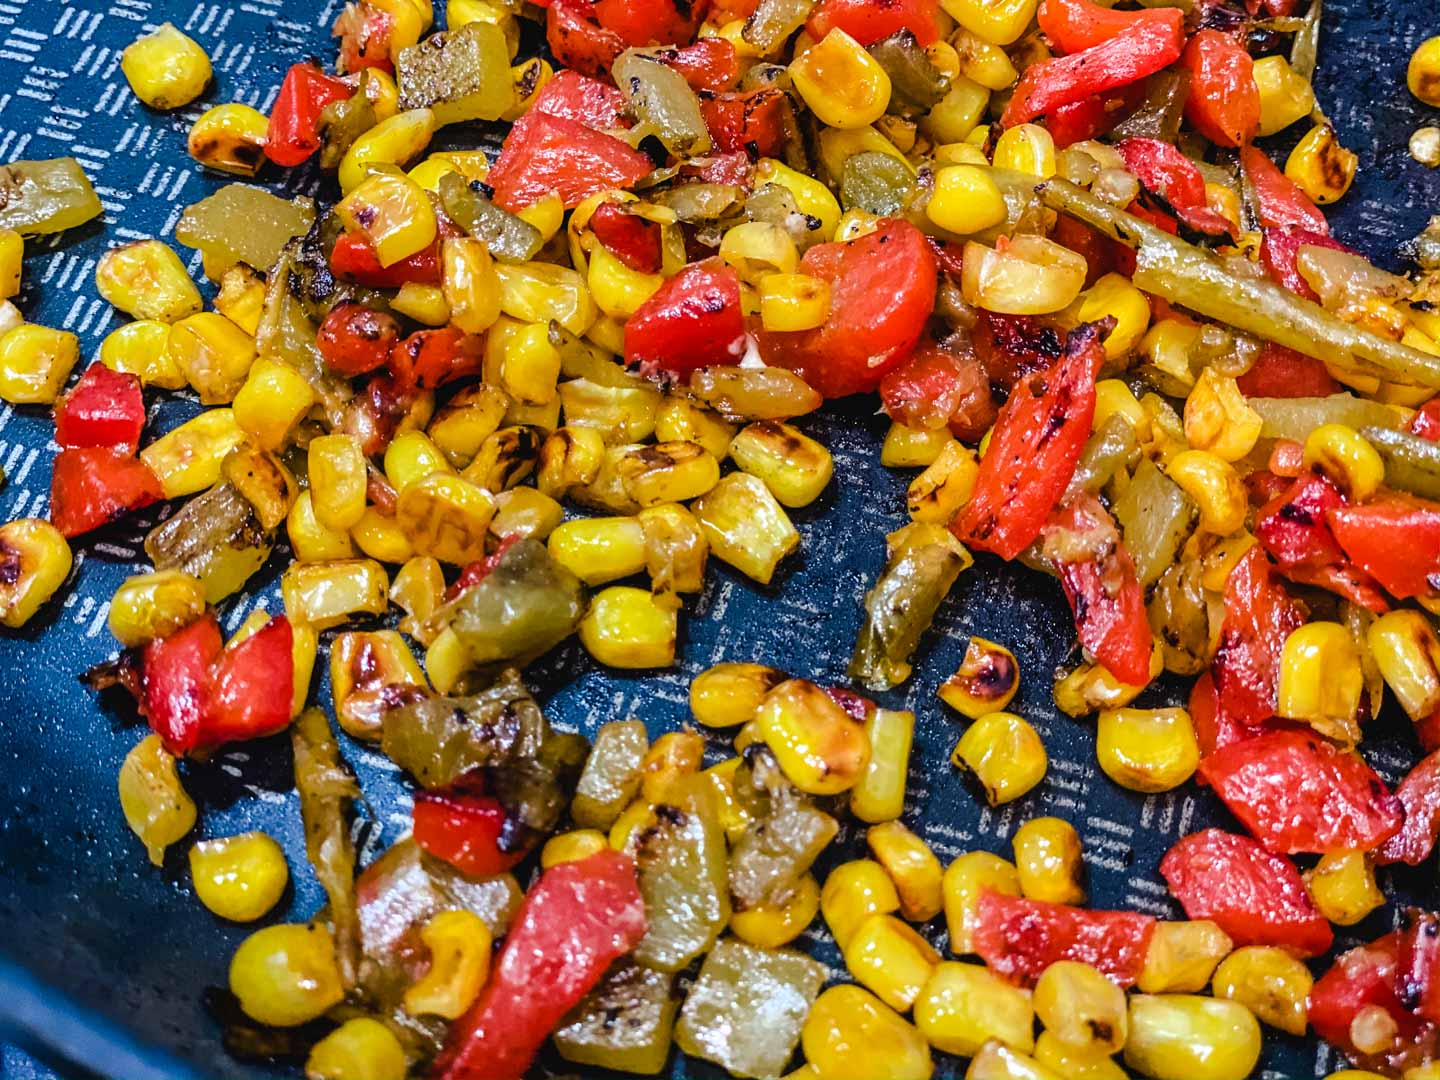 roasted corn, roasted red peppers and green chilis in a skillet.